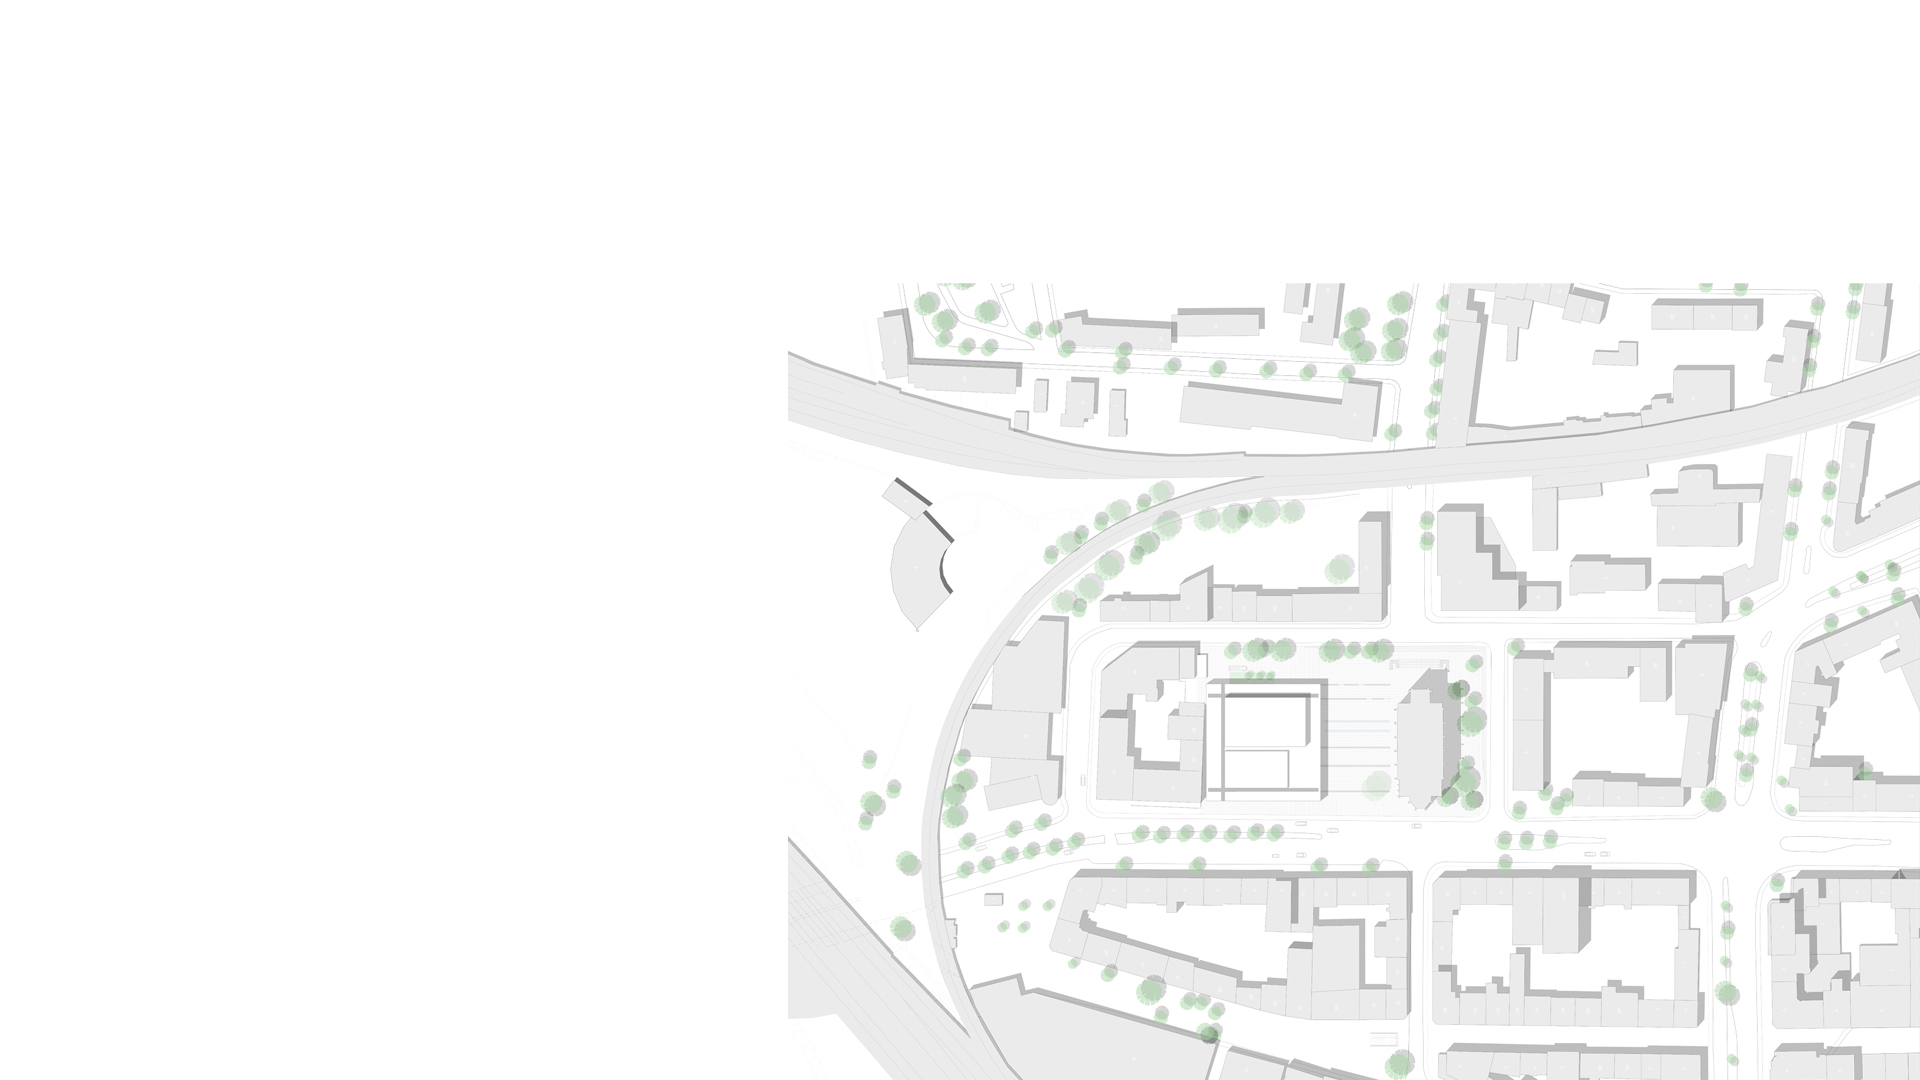 Musikzentrum Bochum shown in context with the city plan.